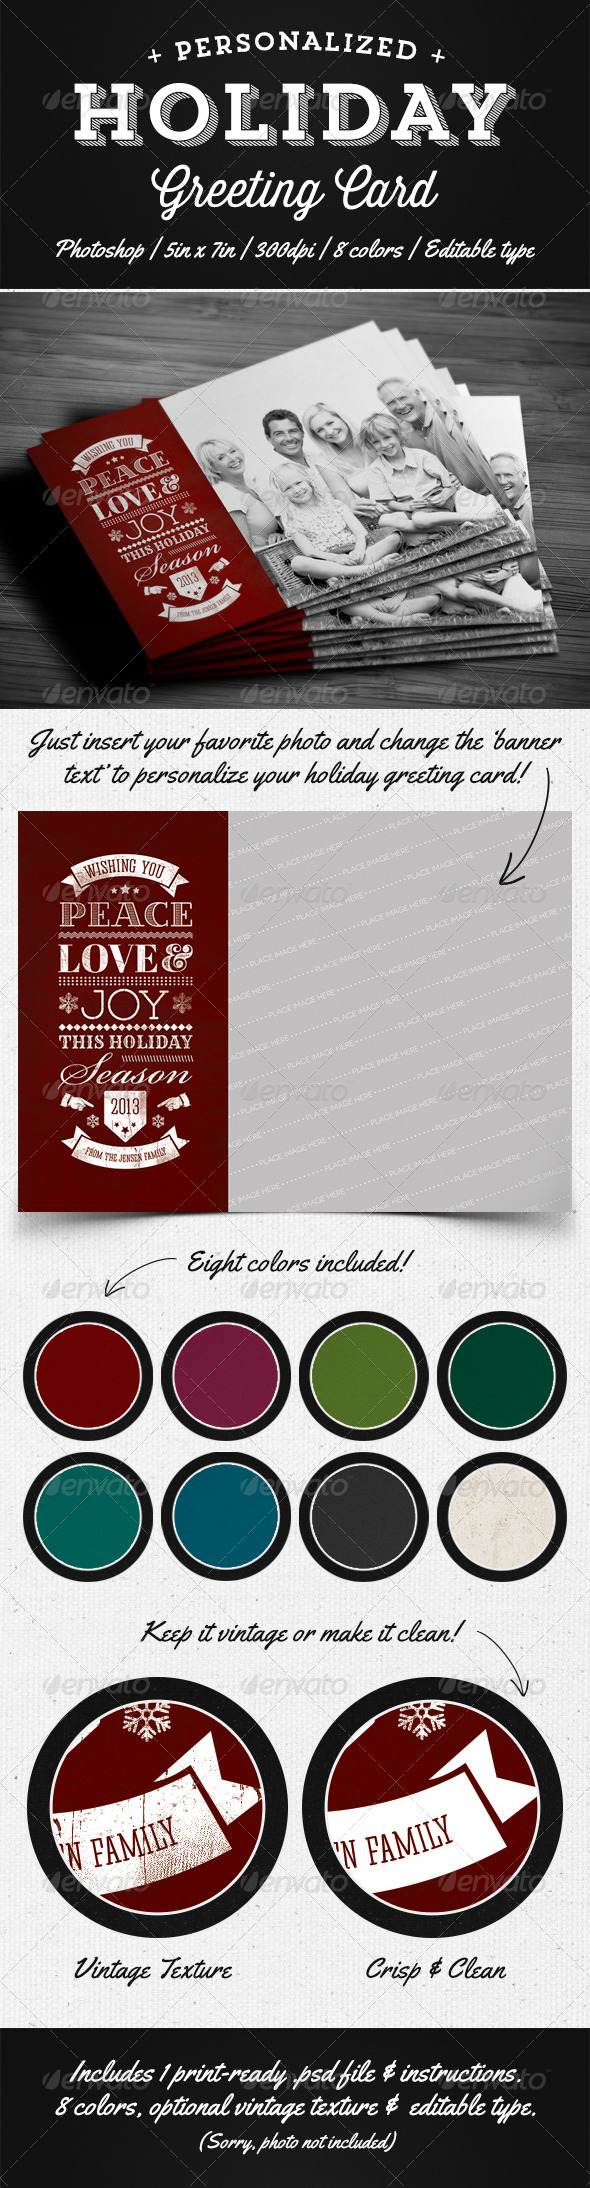 GraphicRiver Personalized Holiday Greeting Card 5351155